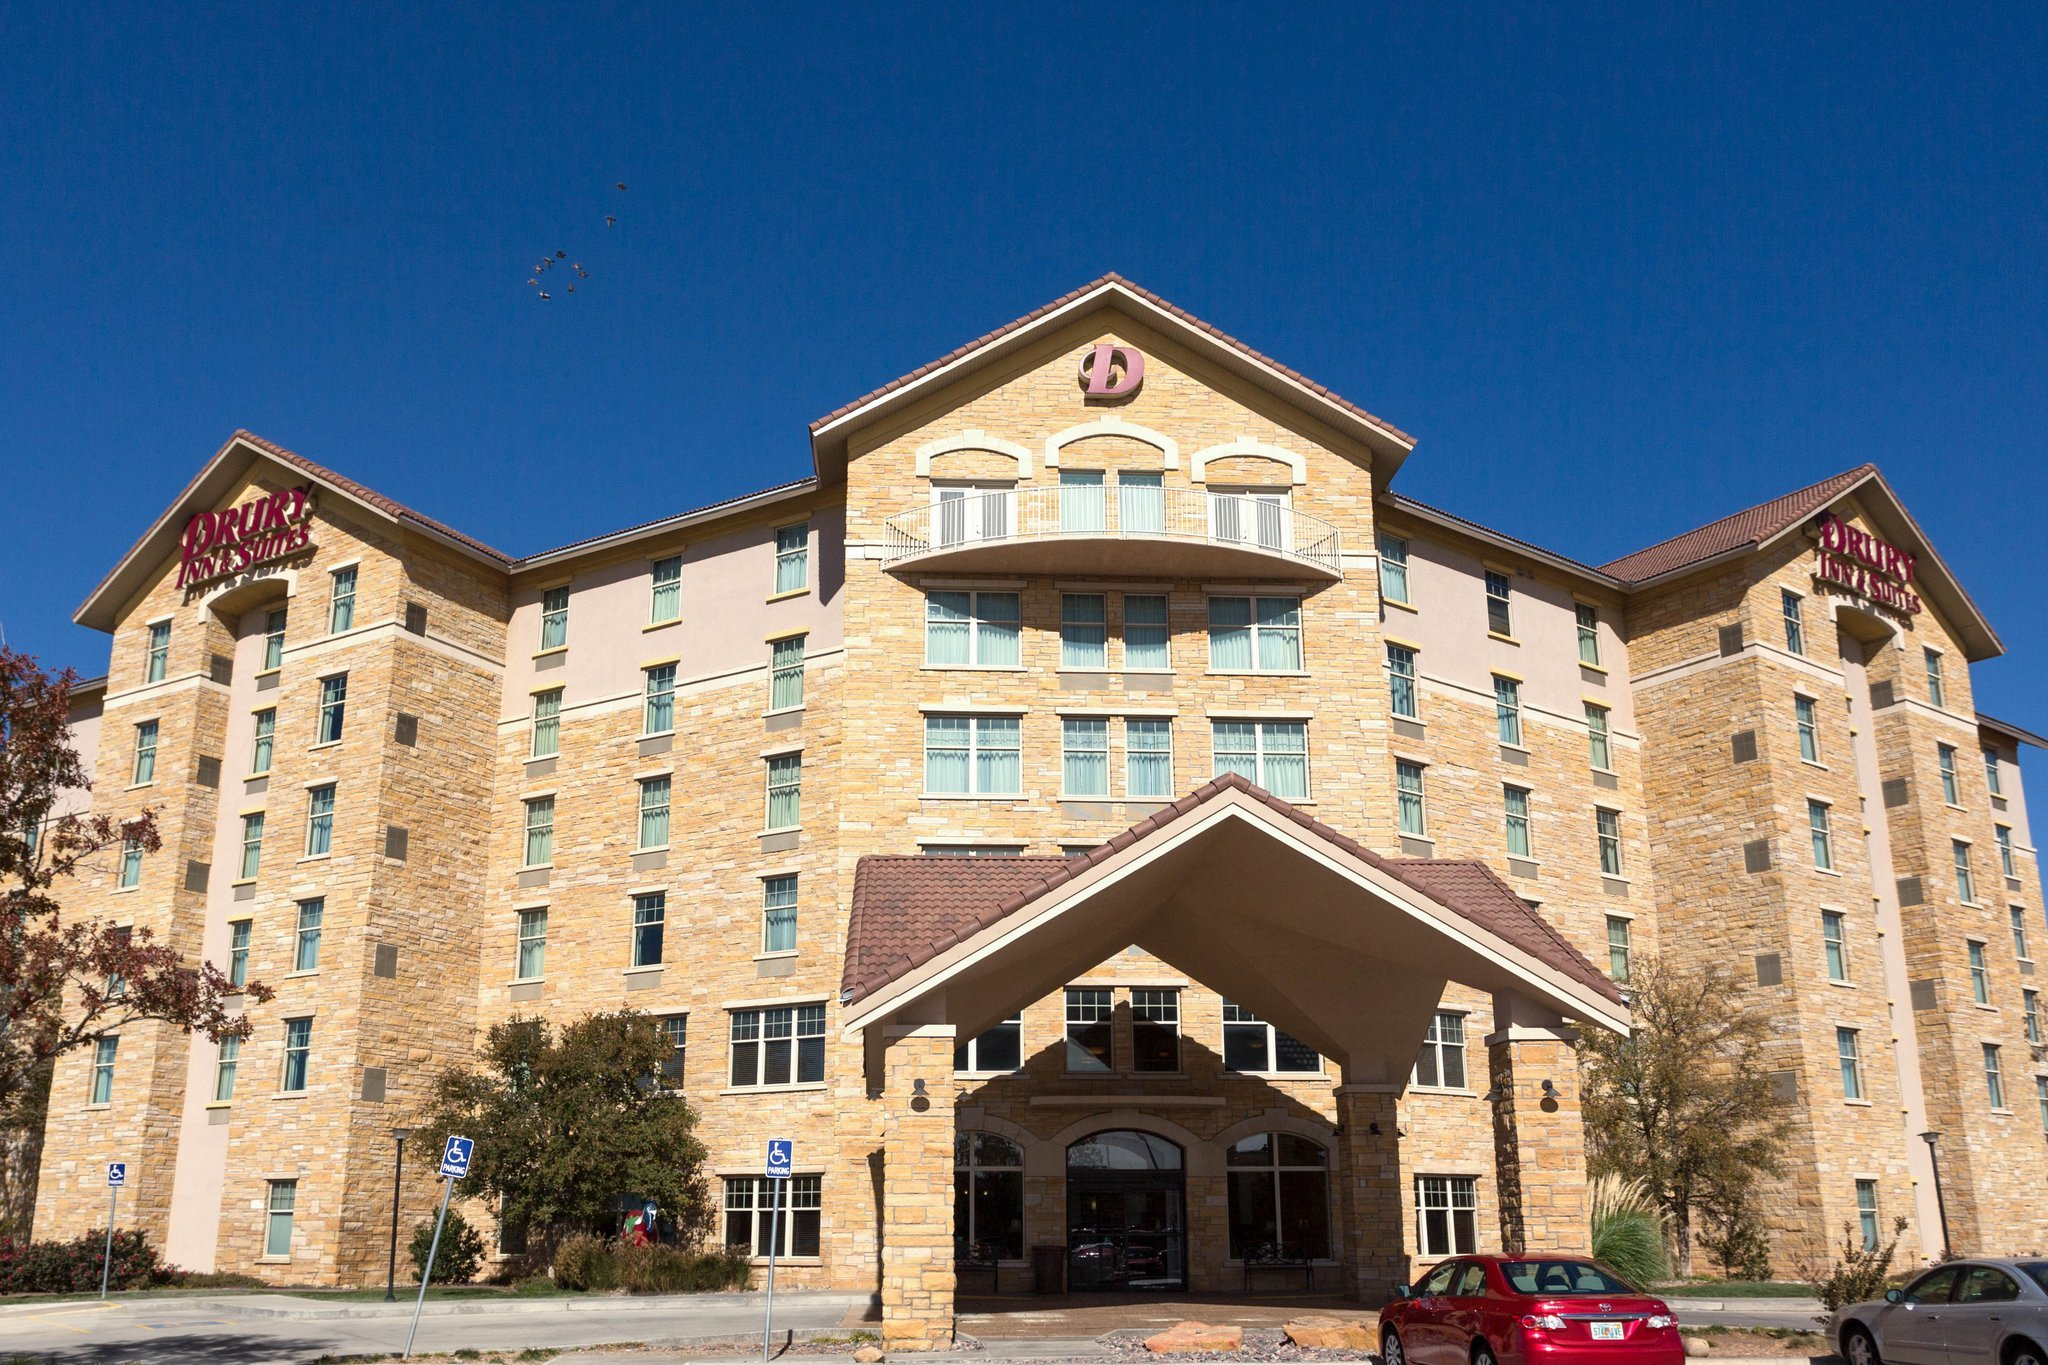 Drury Inn & Suites Amarillo